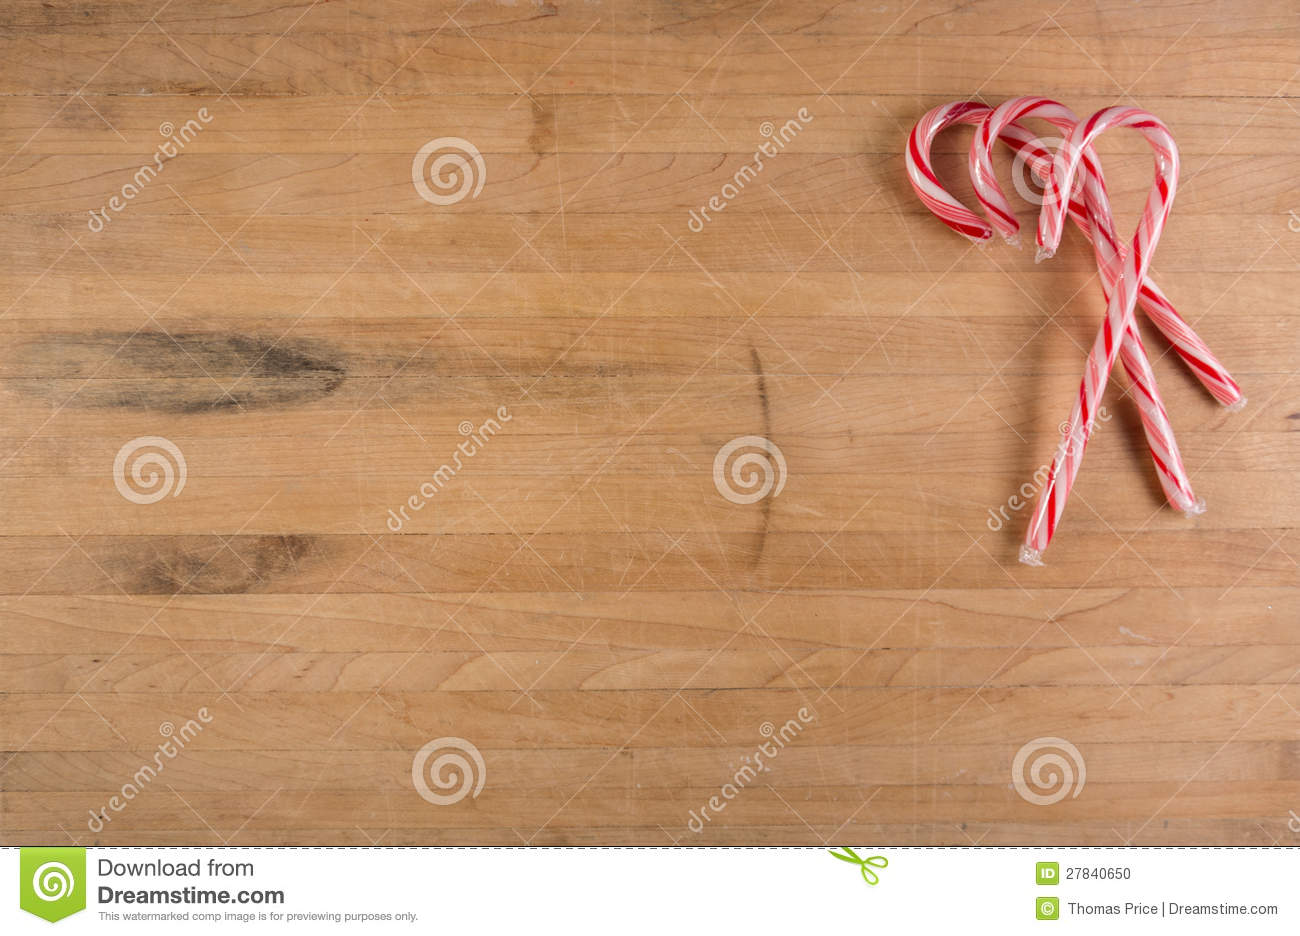 Group of Candy Canes Sits on Cutting Board